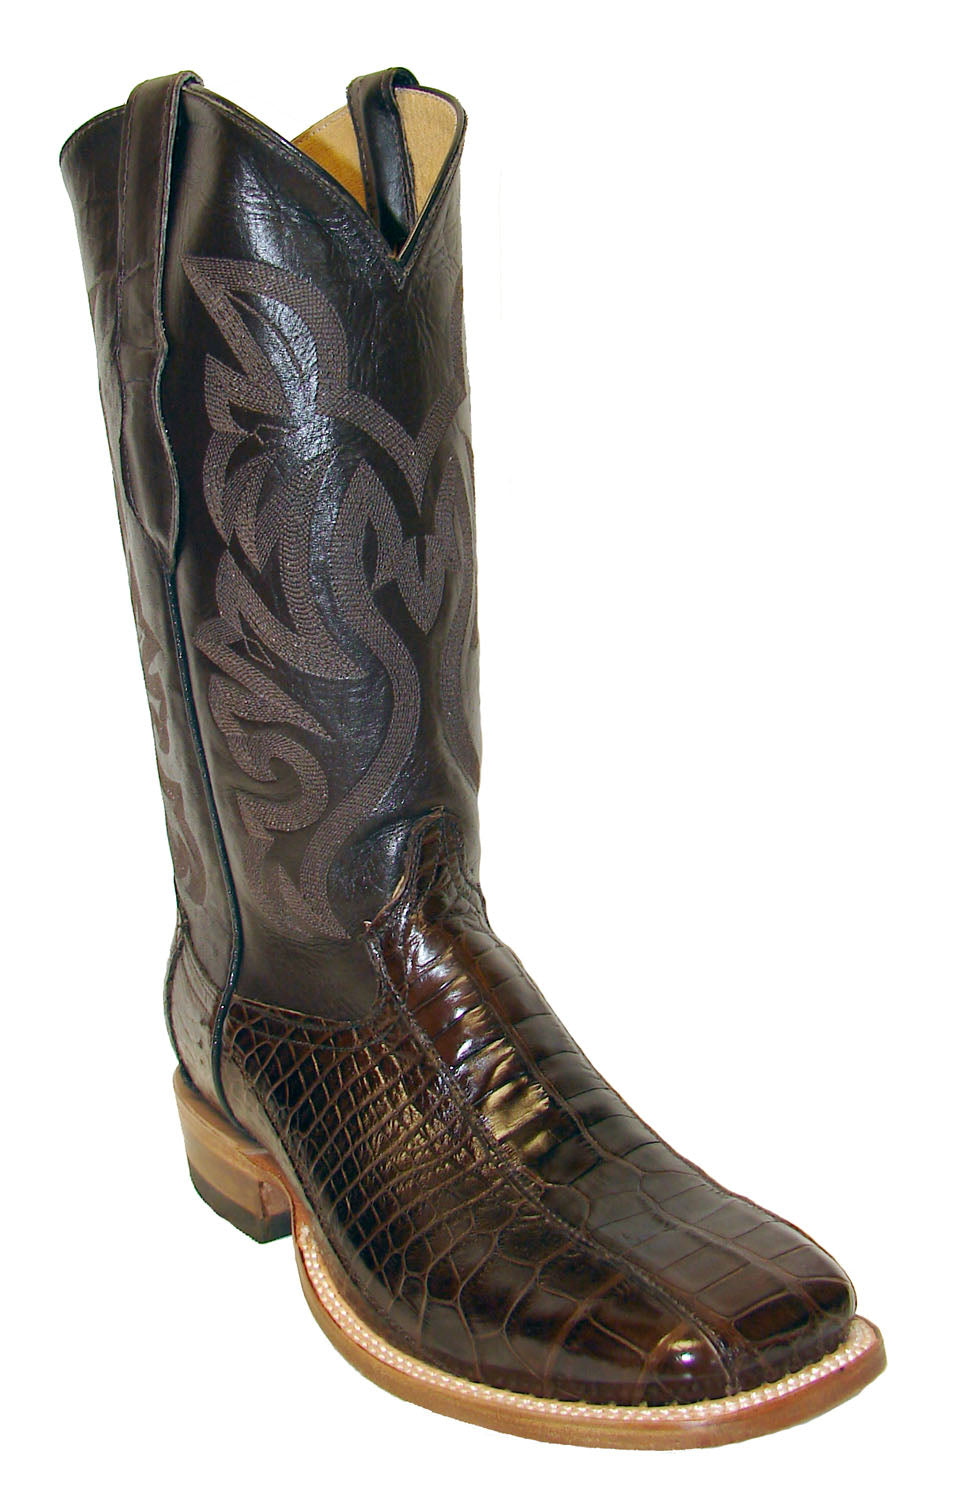 Cowtown Pieced Chocolate Gator Boots for Men - Pards